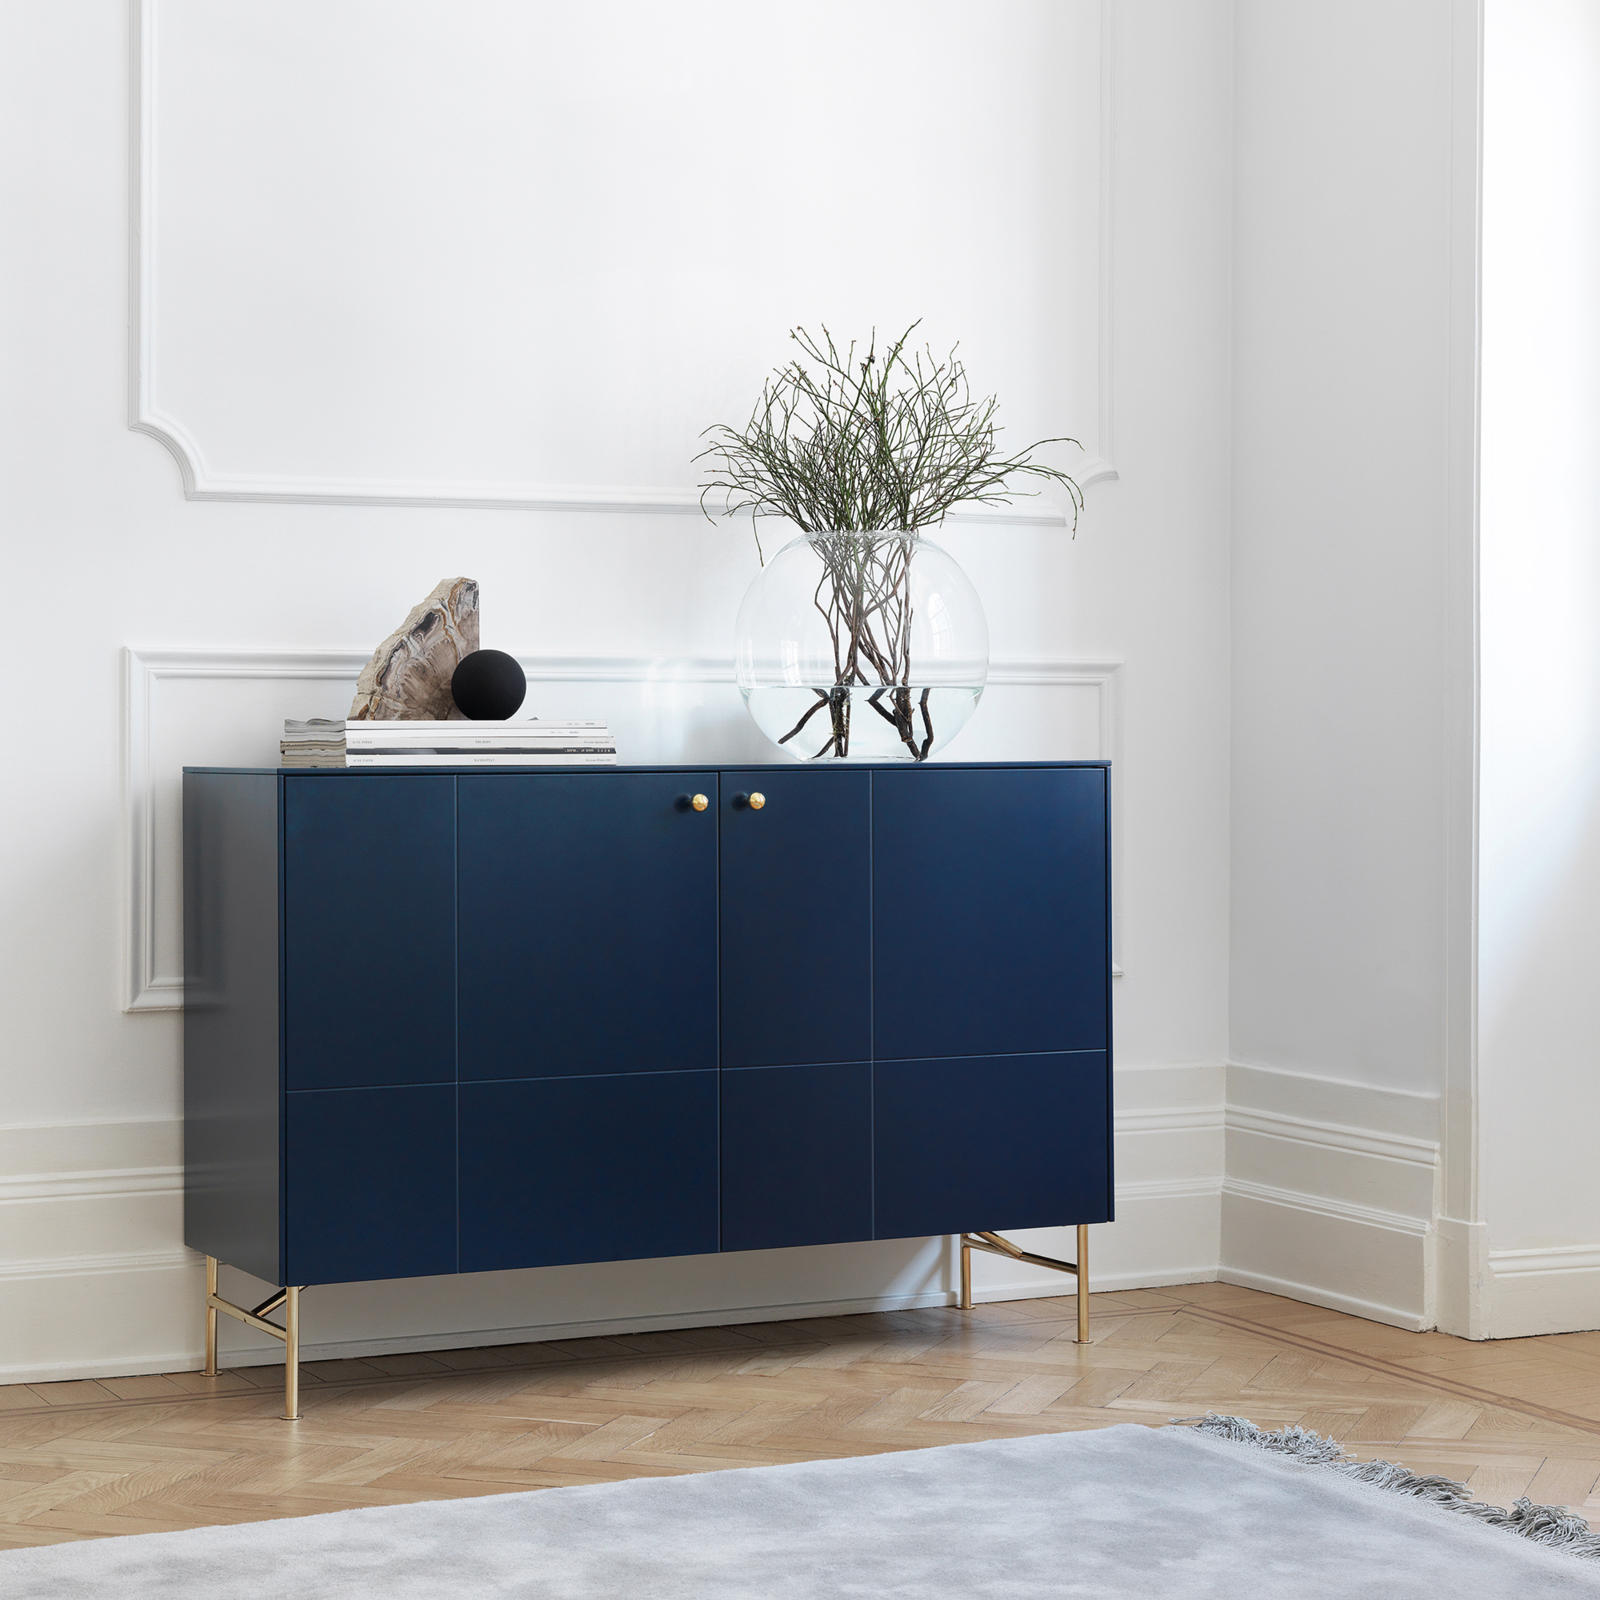 Dark blue sideboard in a living room, with handles and legs in brass